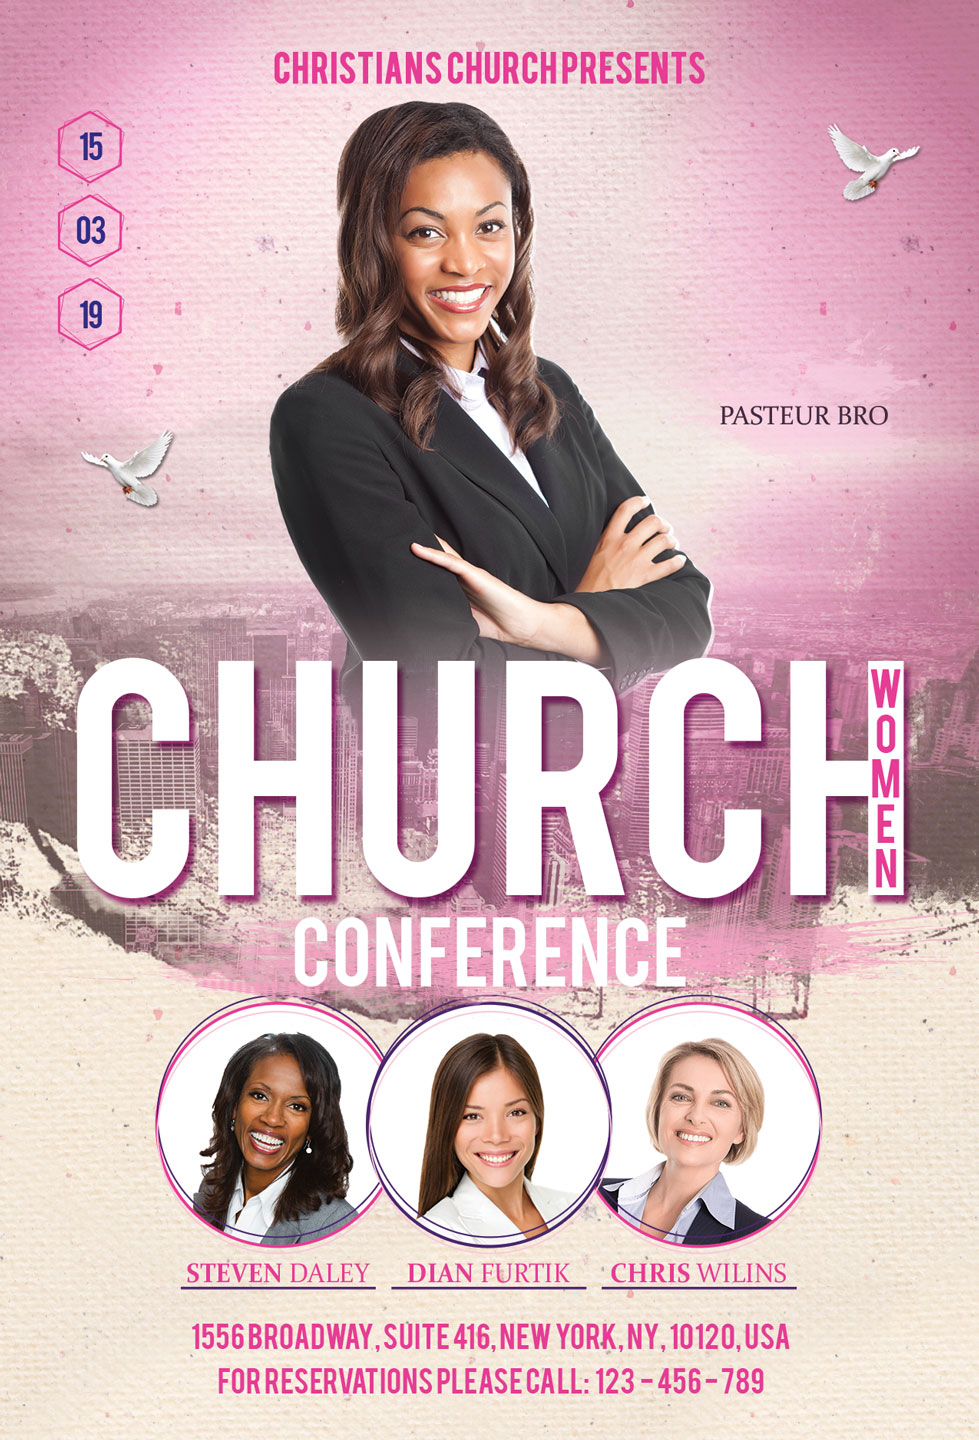 Church Women Conference Flyer Poster example image 4